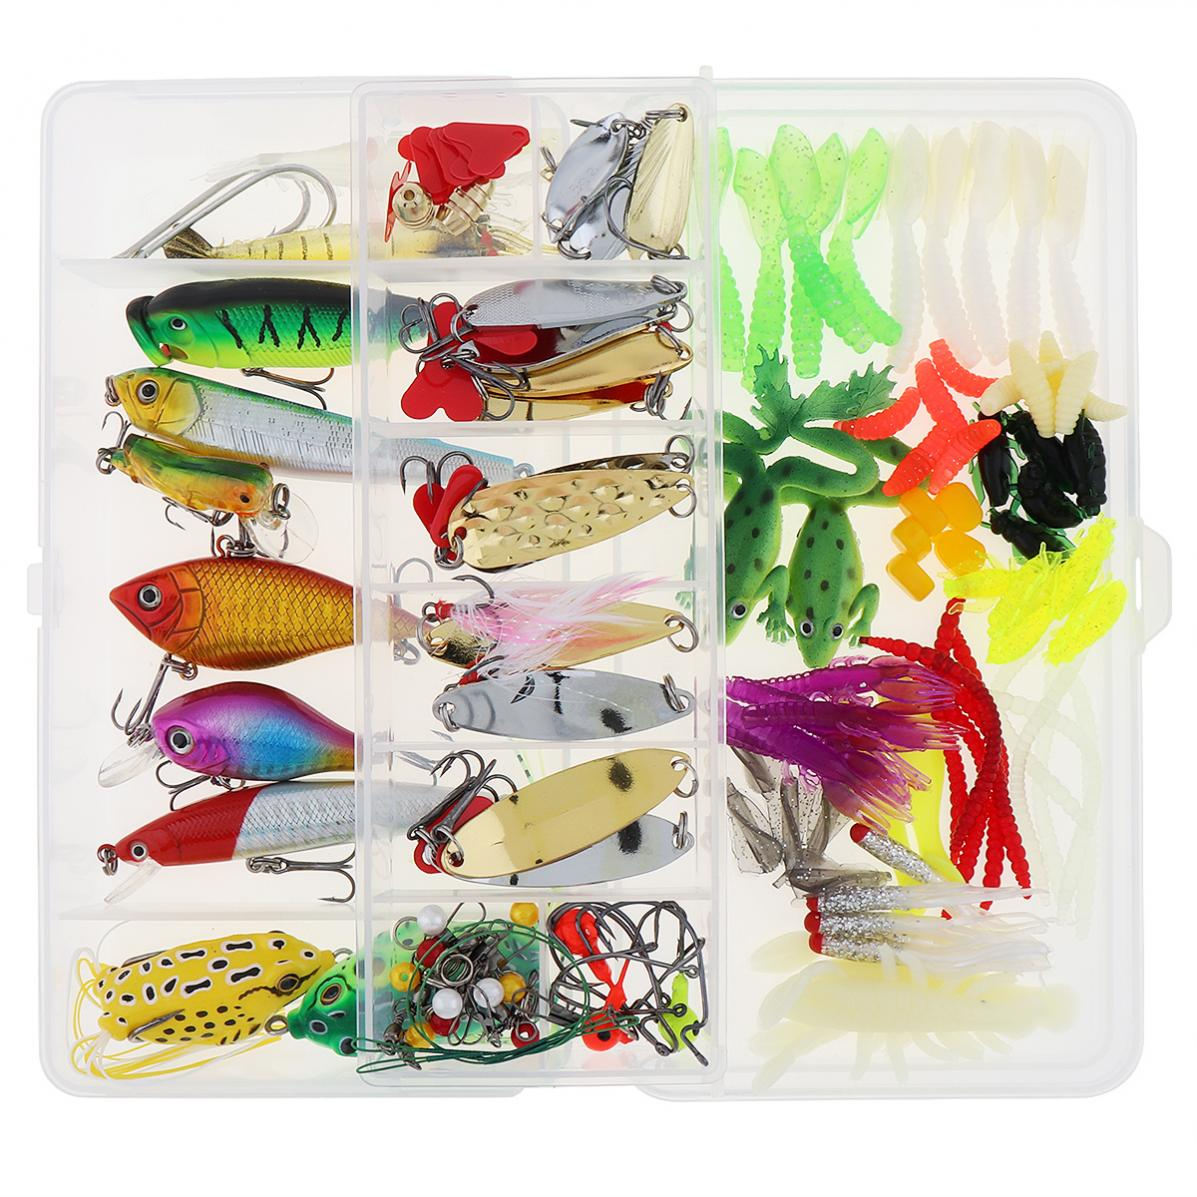 Fishing Lure Set Kit Lots With Tackle Box Fishing Lures